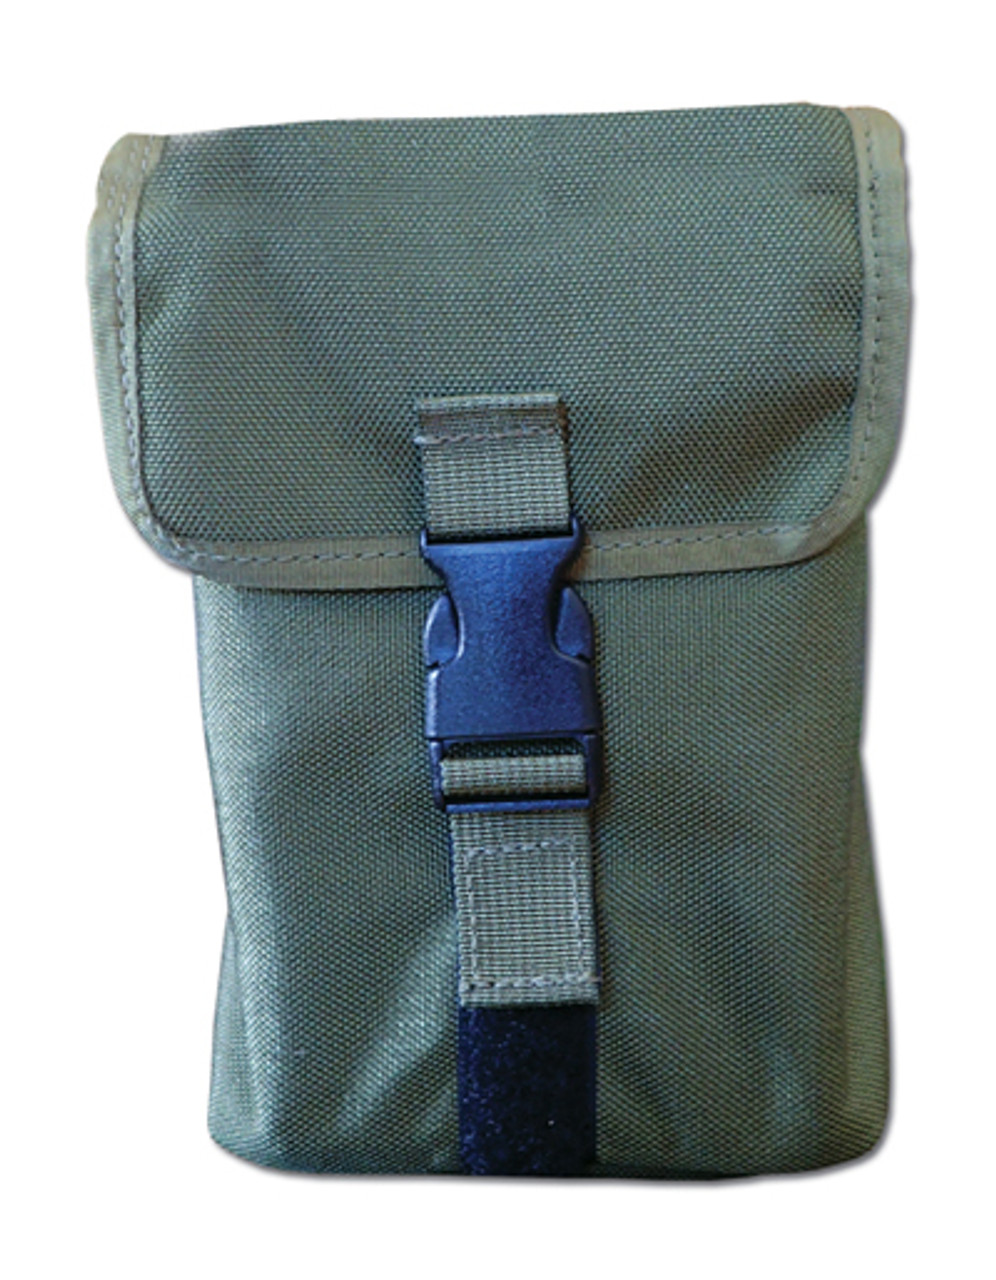 ESEE Knives LARGE-TIN-POUCH-OD Mess/Survival Tin OD Green Cordura Pouch